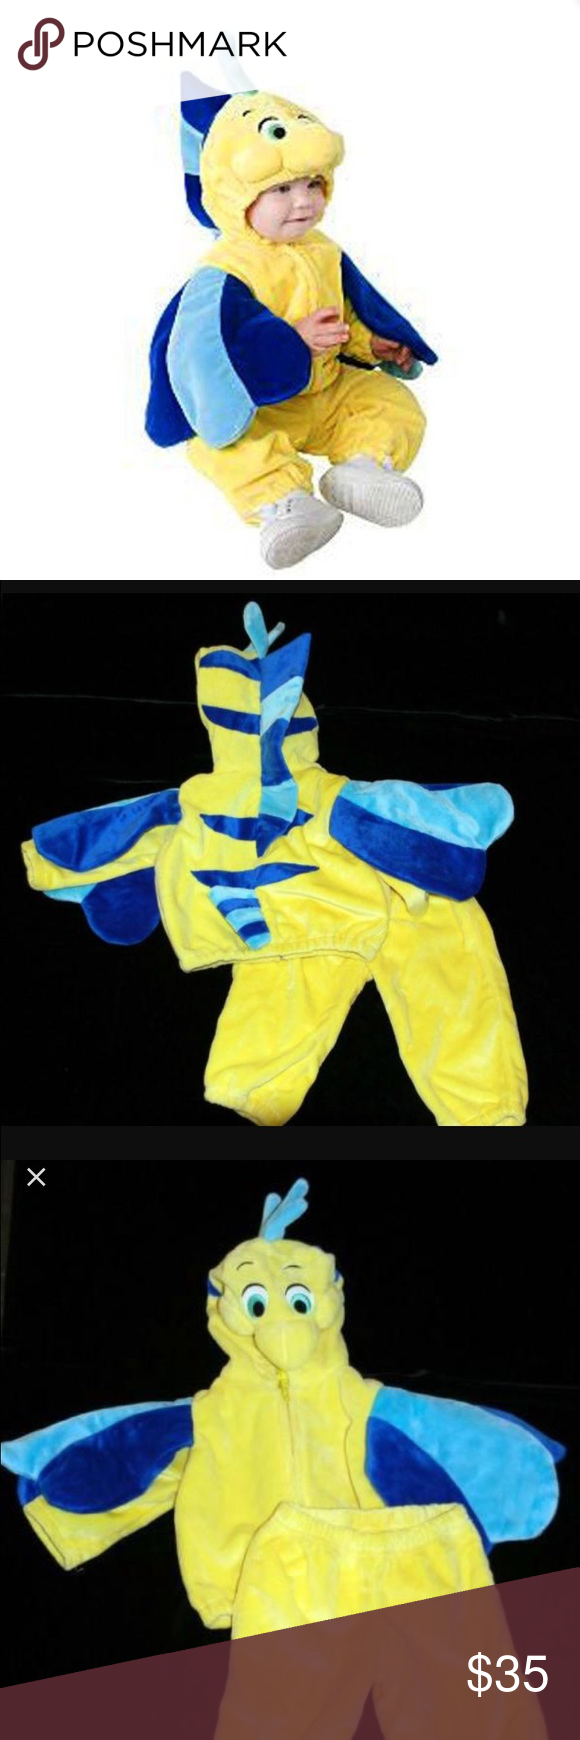 Authentic Disney Store flounder costume 6-12 M Adorable the little mermaid infant flounder costume from Disney store in excellent condition.  sc 1 st  Pinterest & Authentic Disney Store flounder costume 6-12 M Adorable the little ...